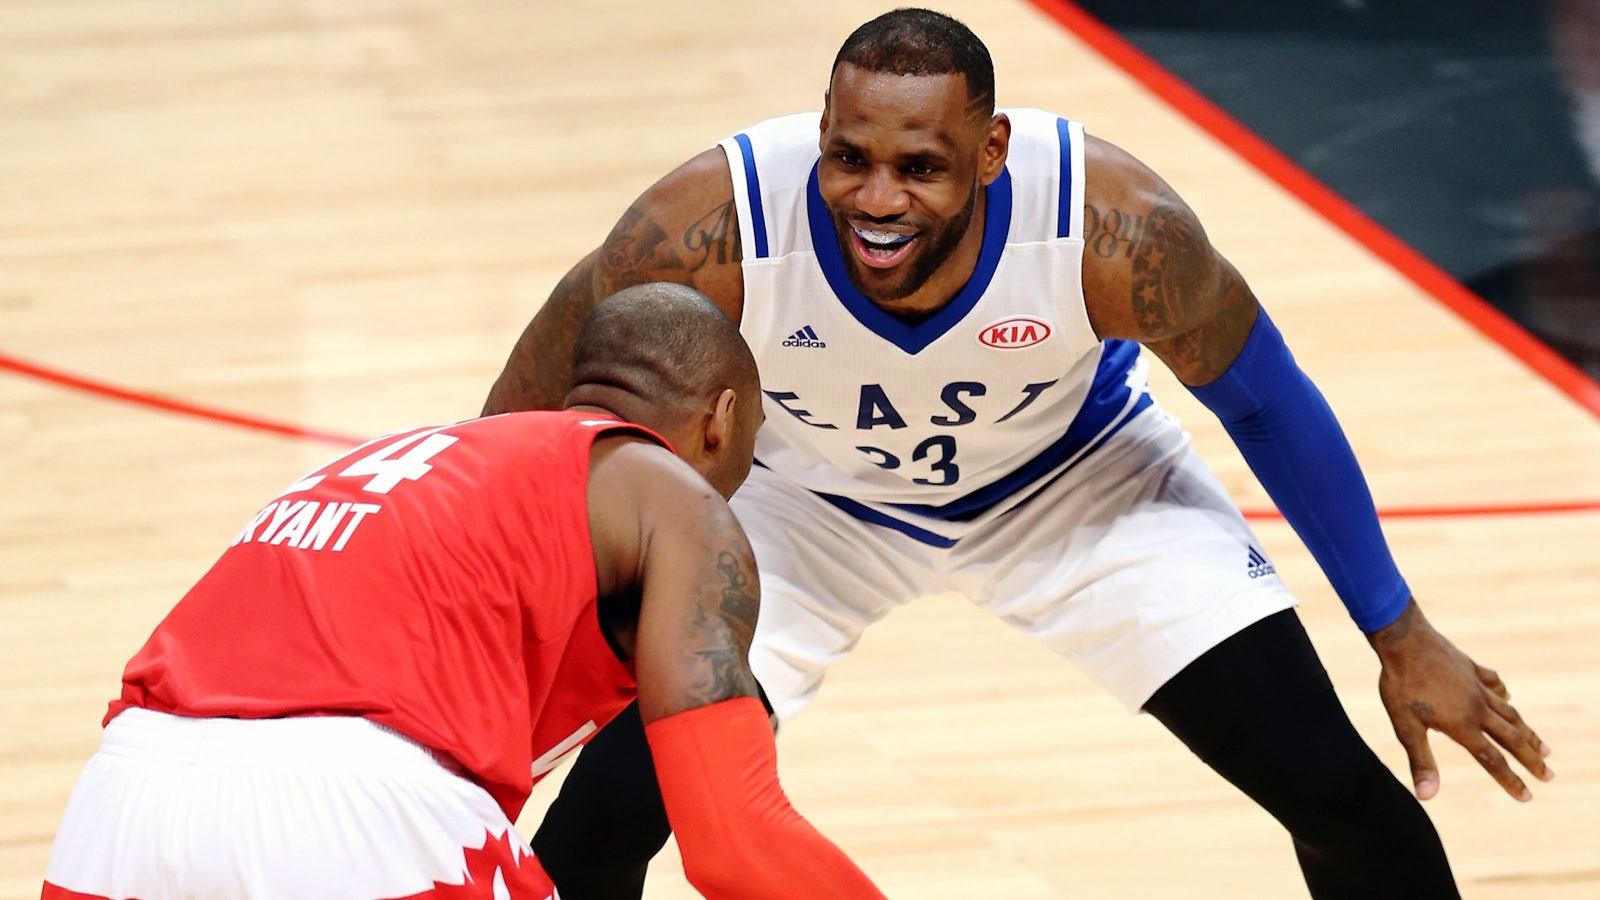 buy online 1673c 2ce1e LeBron plans to frame photo of him and Kobe going one on one ...